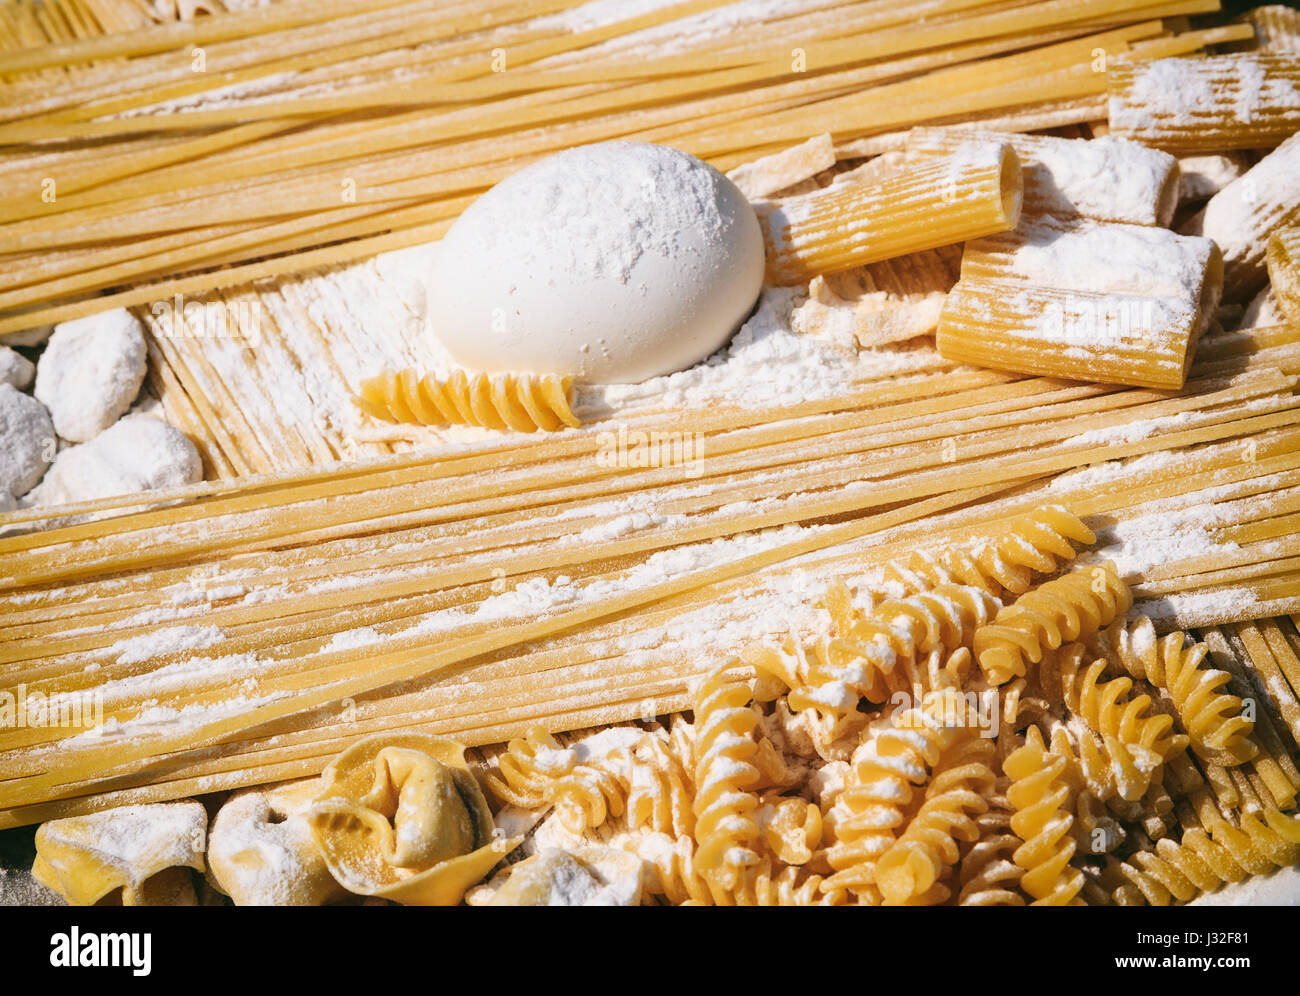 Raw Italian pasta and ingredients - pasta preparation - Stock Image